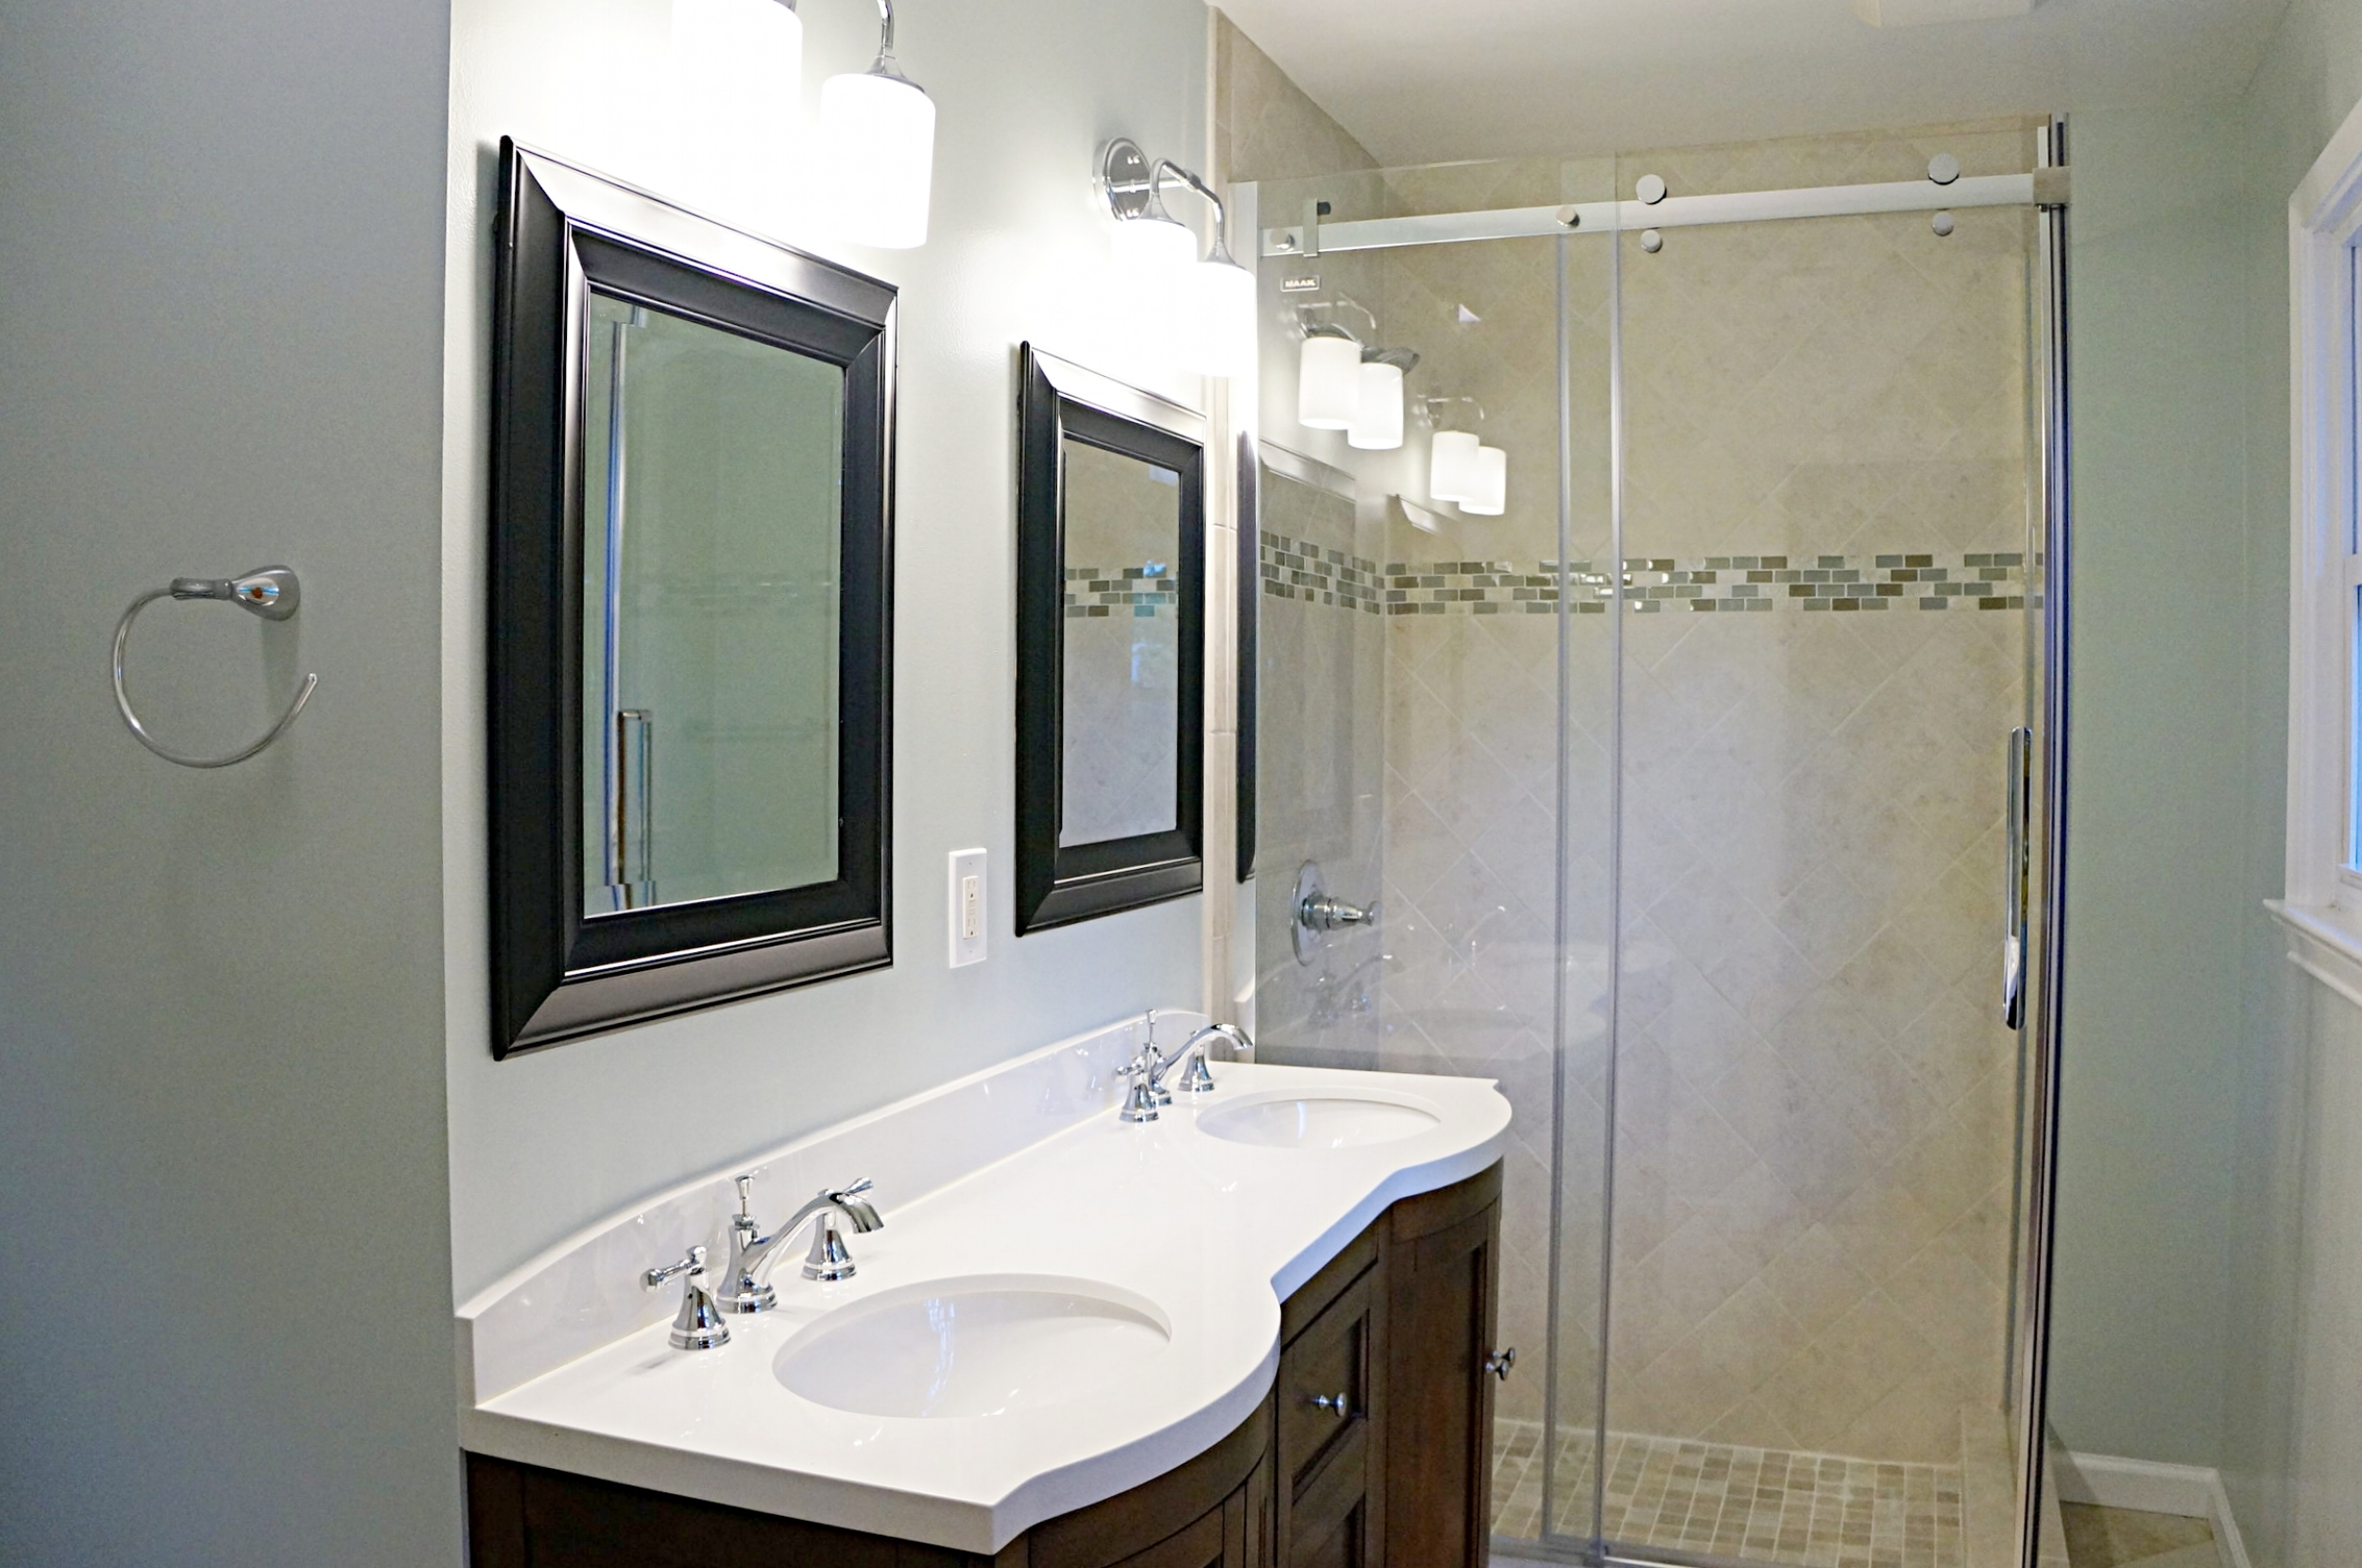 Old Towne Design Build can help clients reconfigure the bathroom for the best layout. -